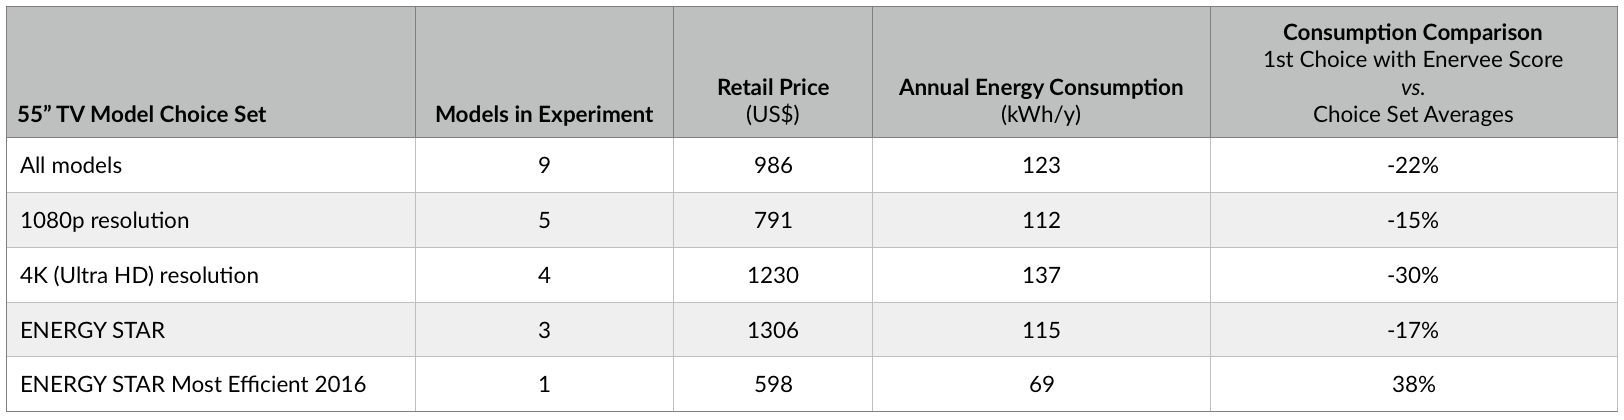 Comparison of electricity use